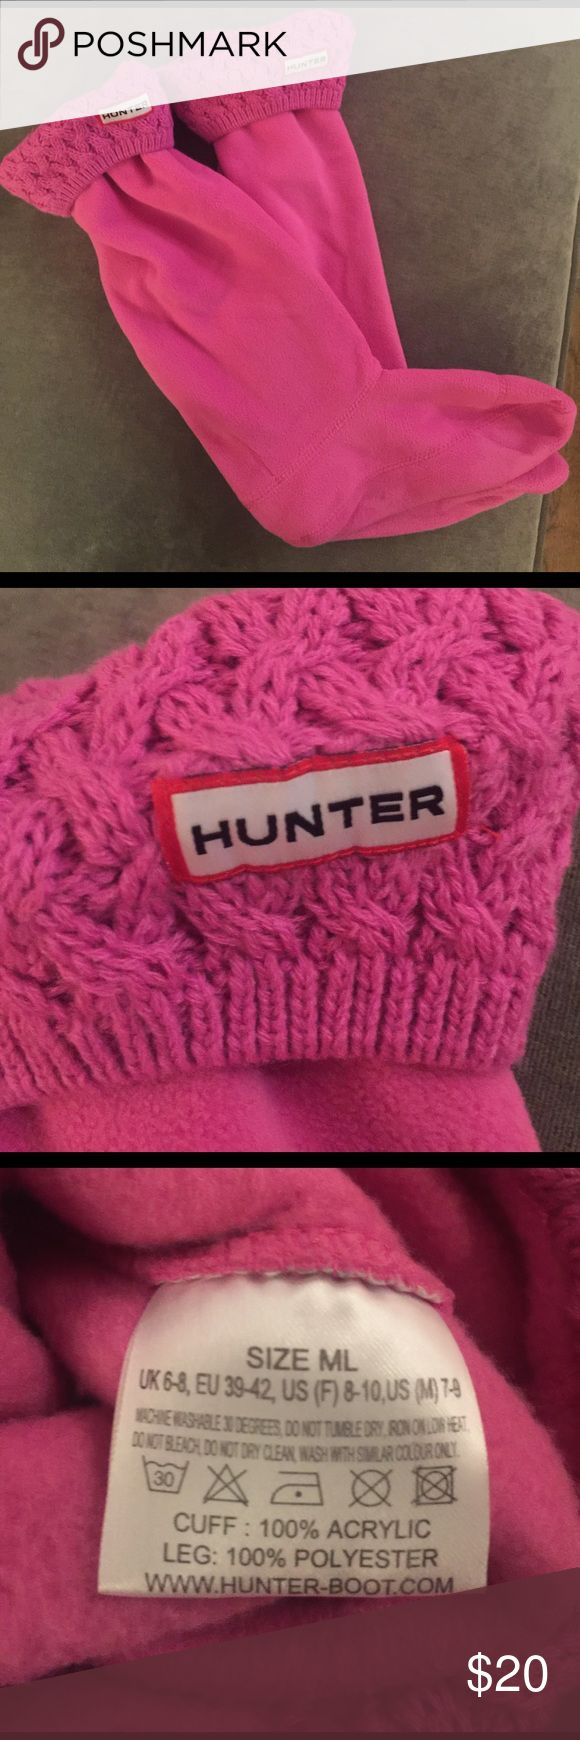 Hunter boot liners size ML Like new, may have been worn once, Hunter tall boot liners size ML fits boot size 8-10 hot pink color with sweater top, warm fleece bottom. Hunter Accessories Hosiery & Socks